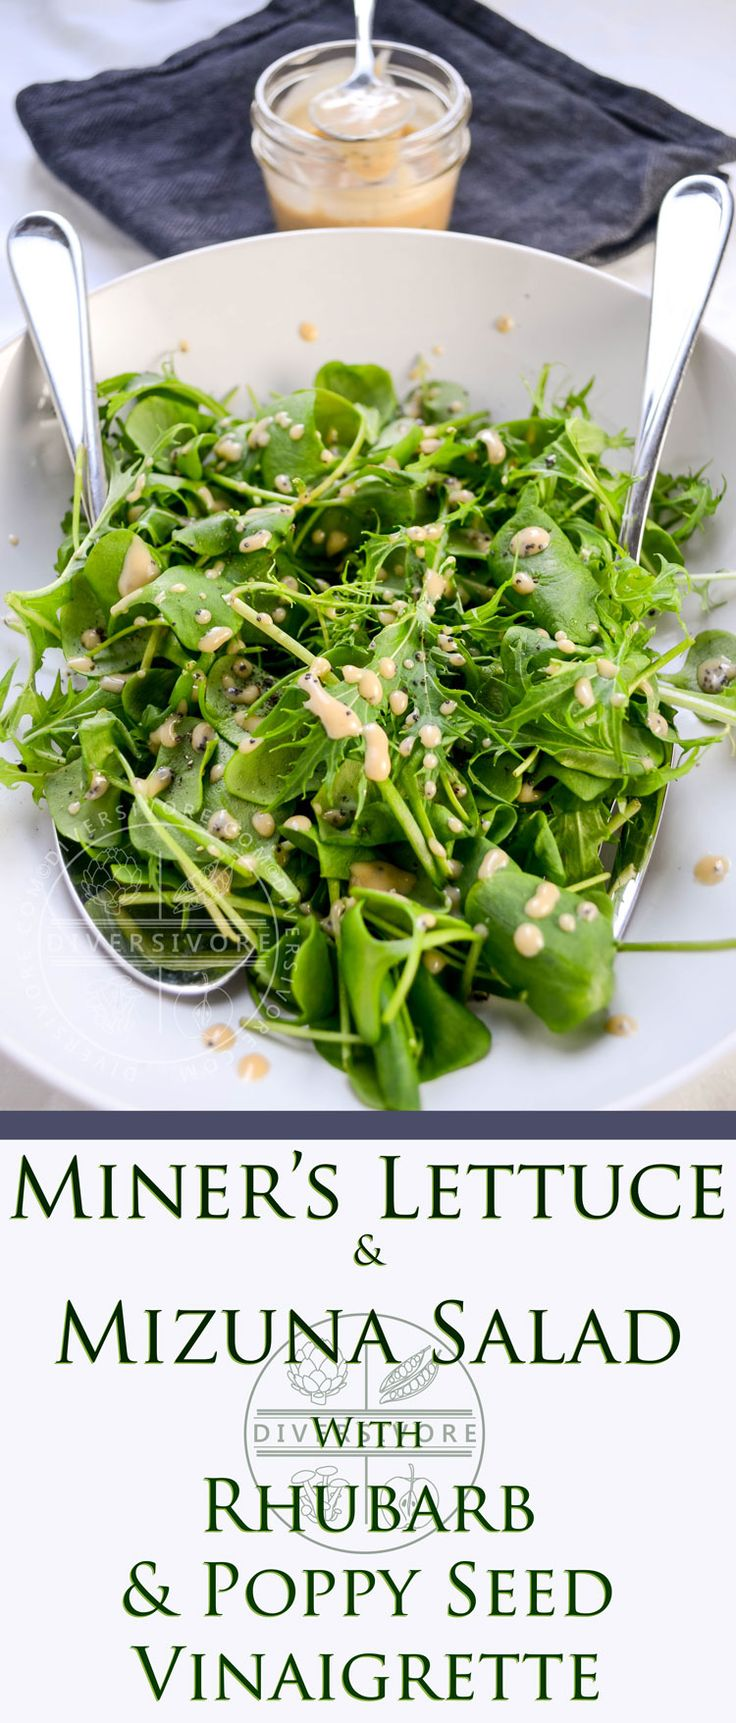 A spring salad featuring two very different but equally spectacular tender greens and an easy scratch-made dressing.